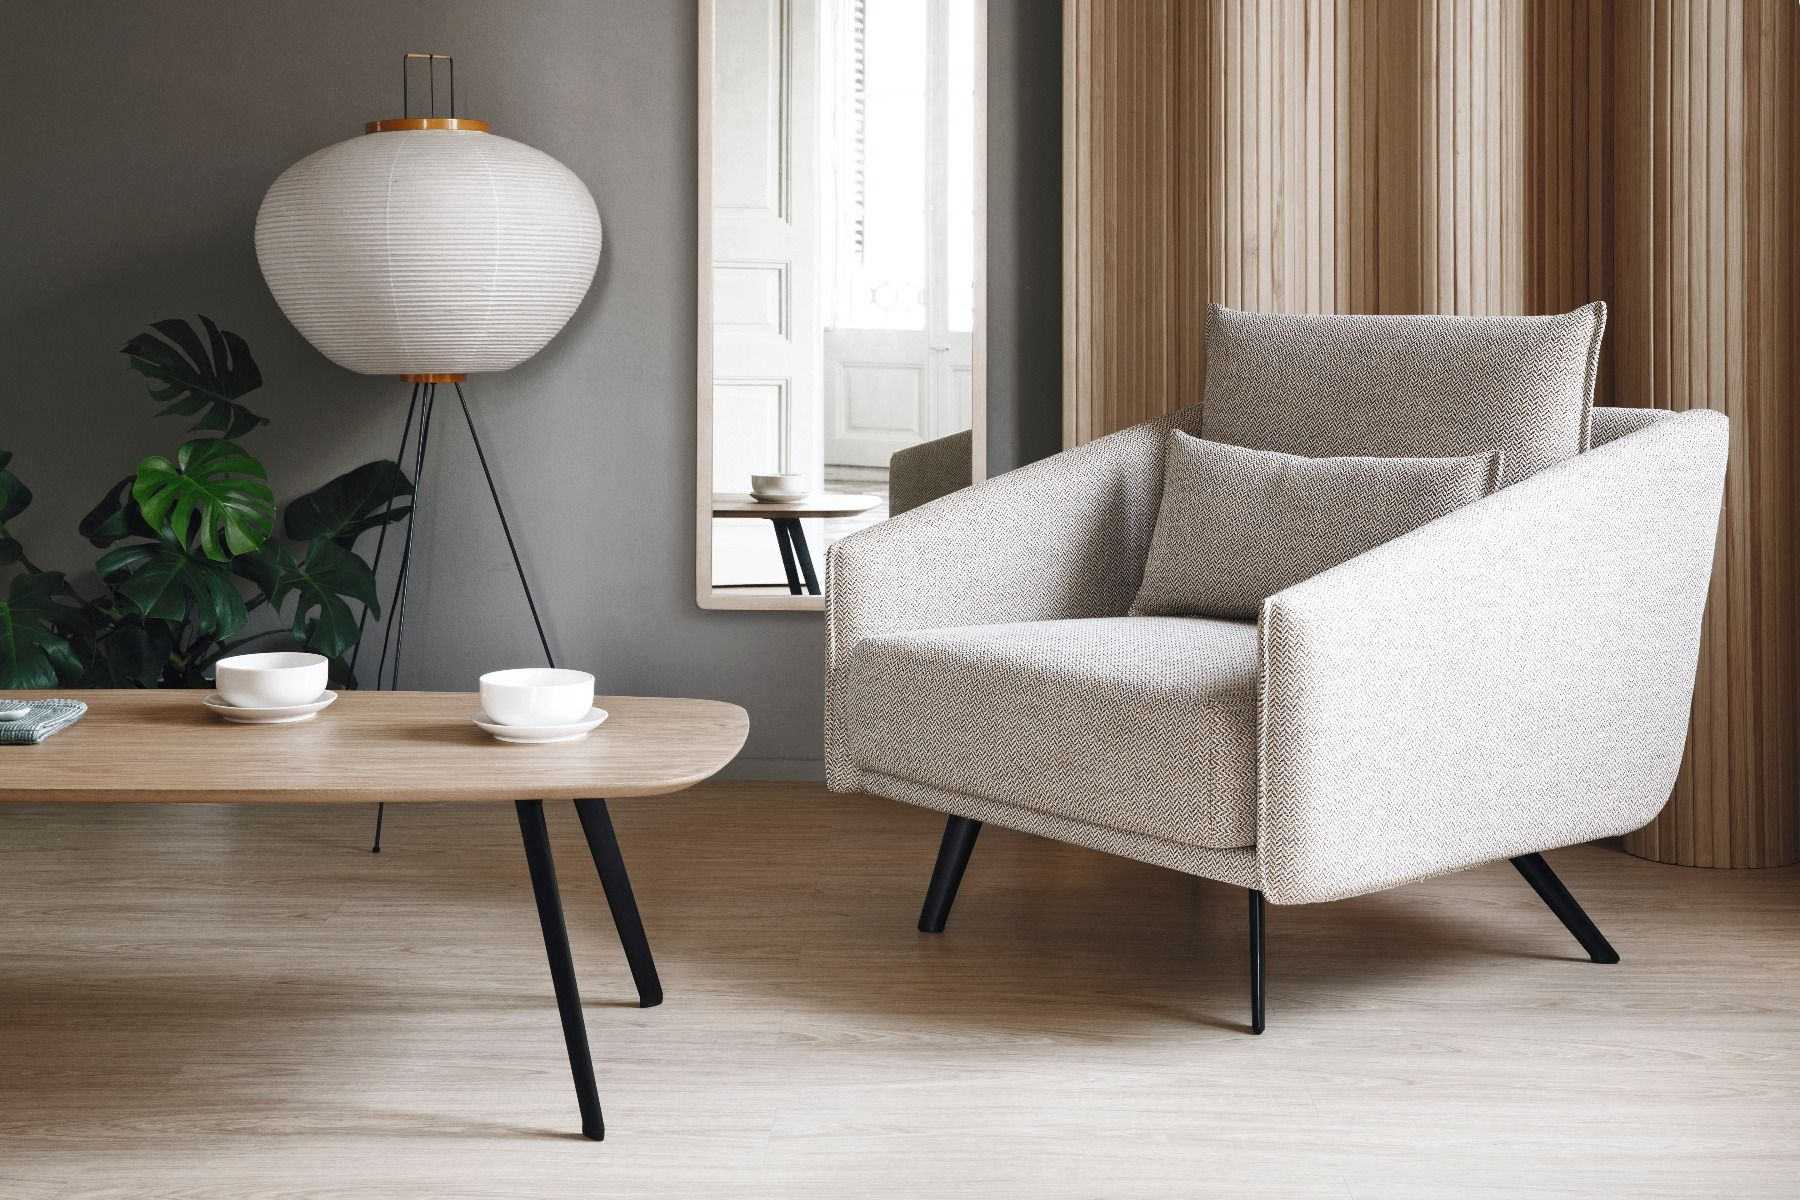 Stua Solapa coffee table oak with black legs  in front of a chair